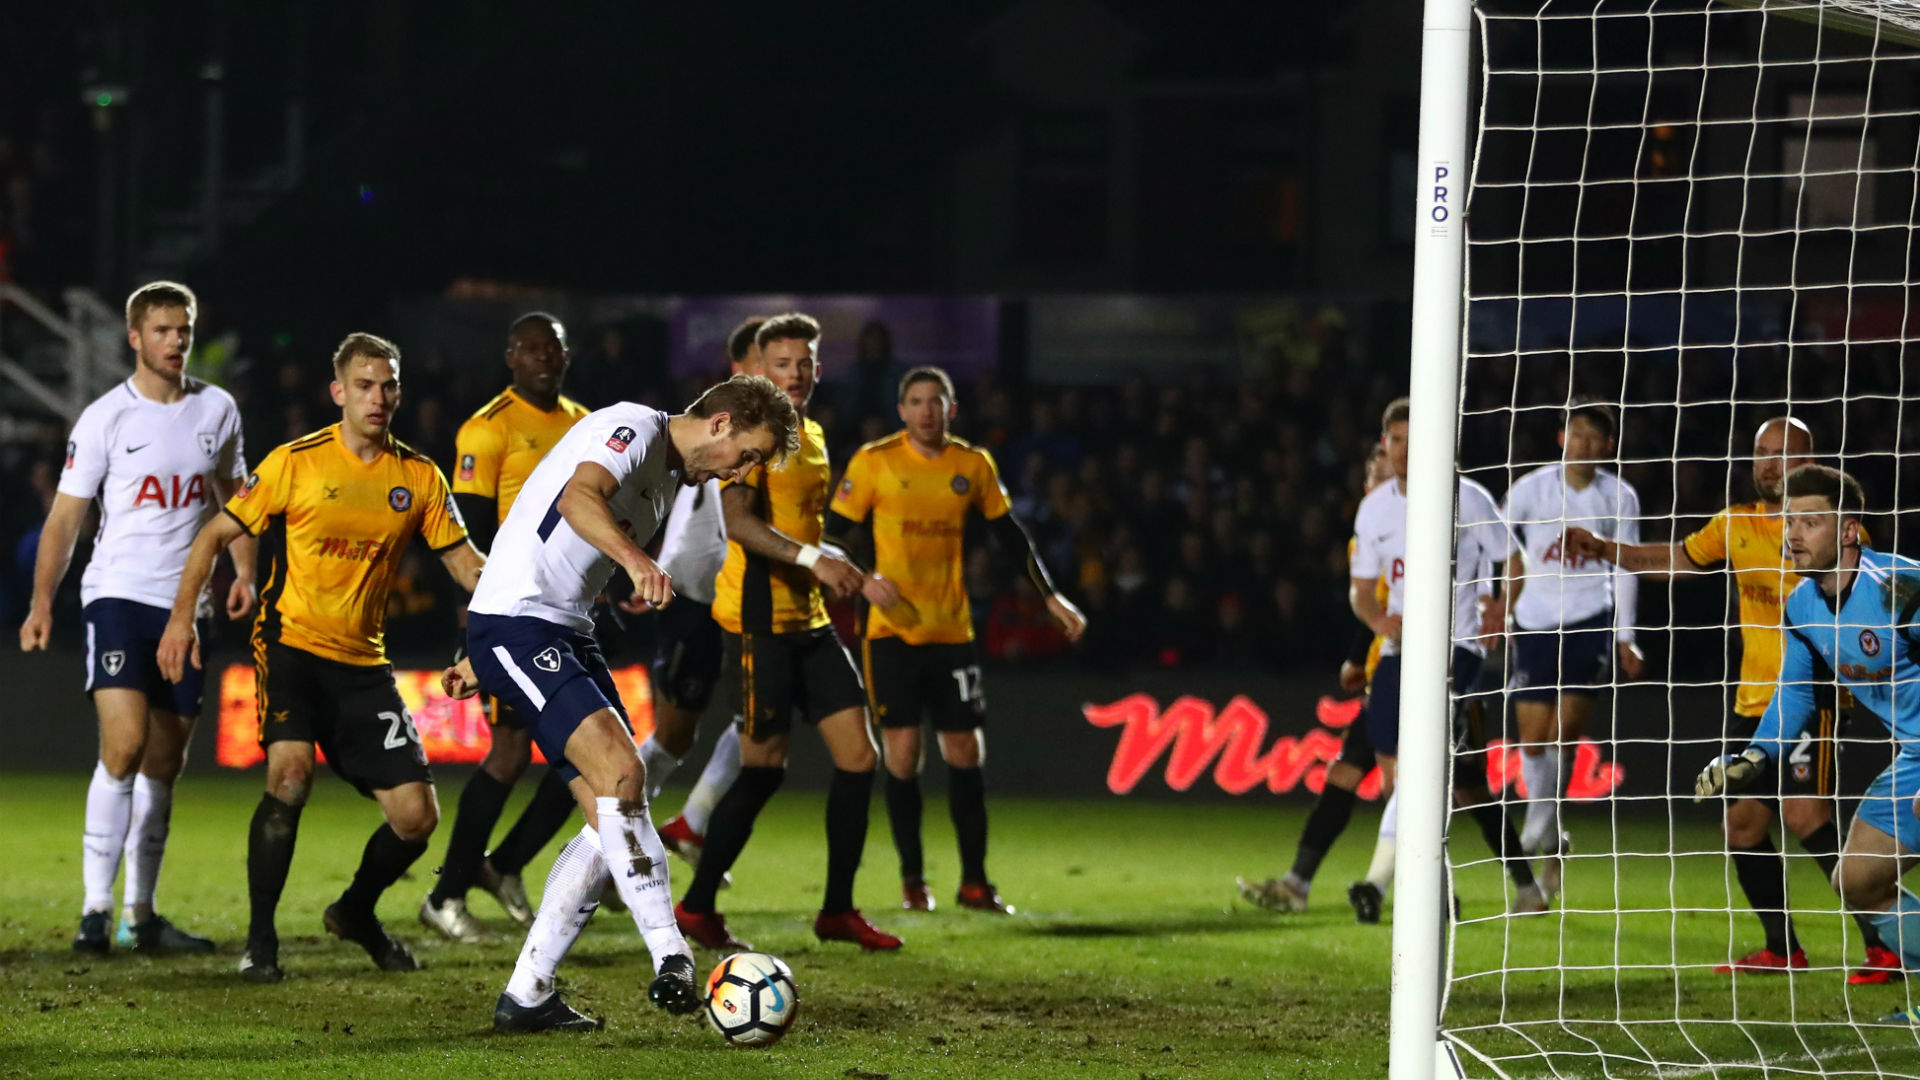 Newport County vs Tottenham Match Preview